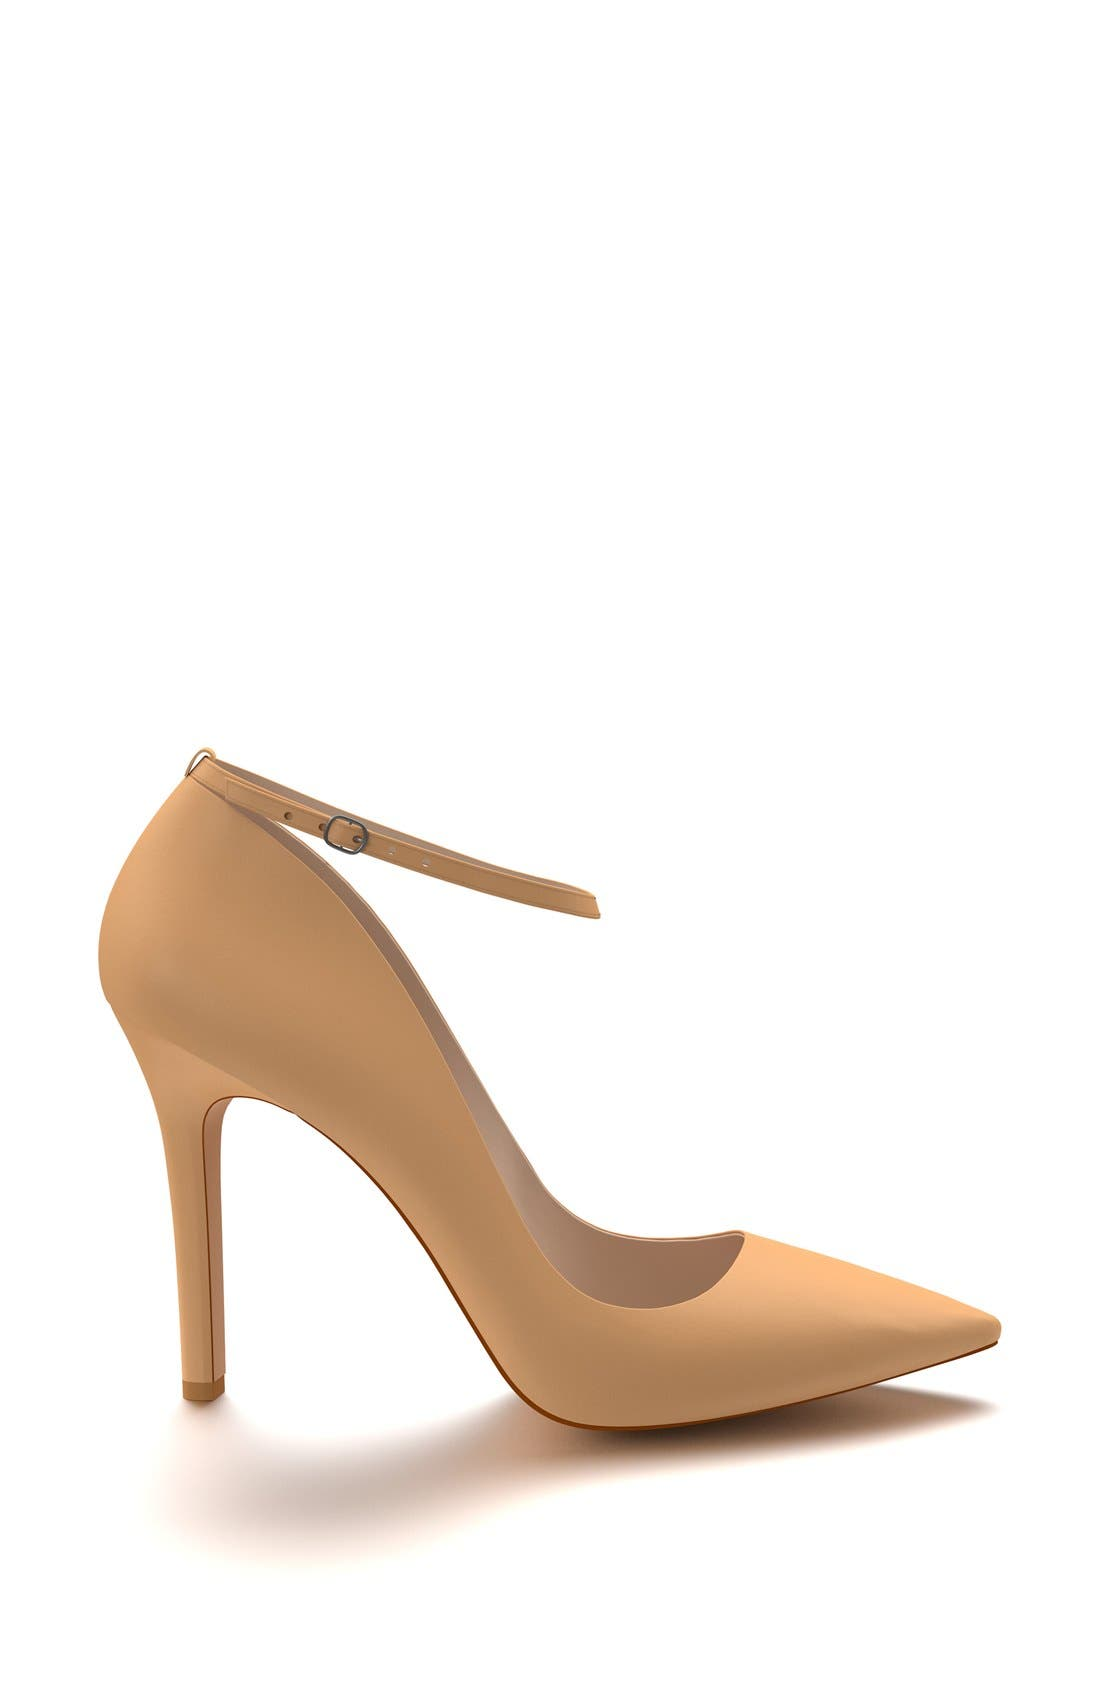 Ankle Strap Pump,                             Alternate thumbnail 4, color,                             Spiced Tan Leather